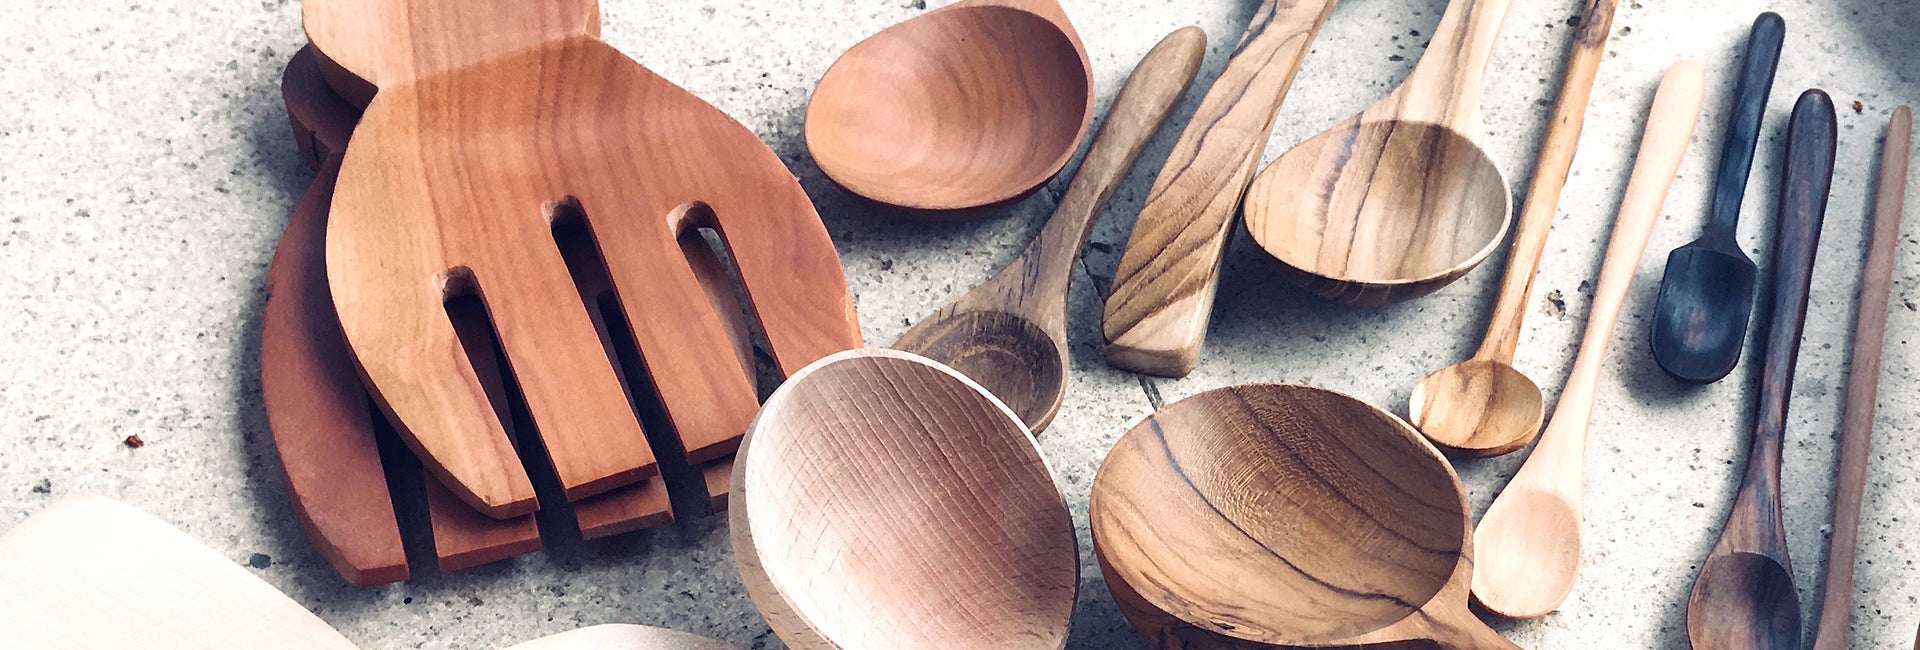 Wooden Dining Utensils